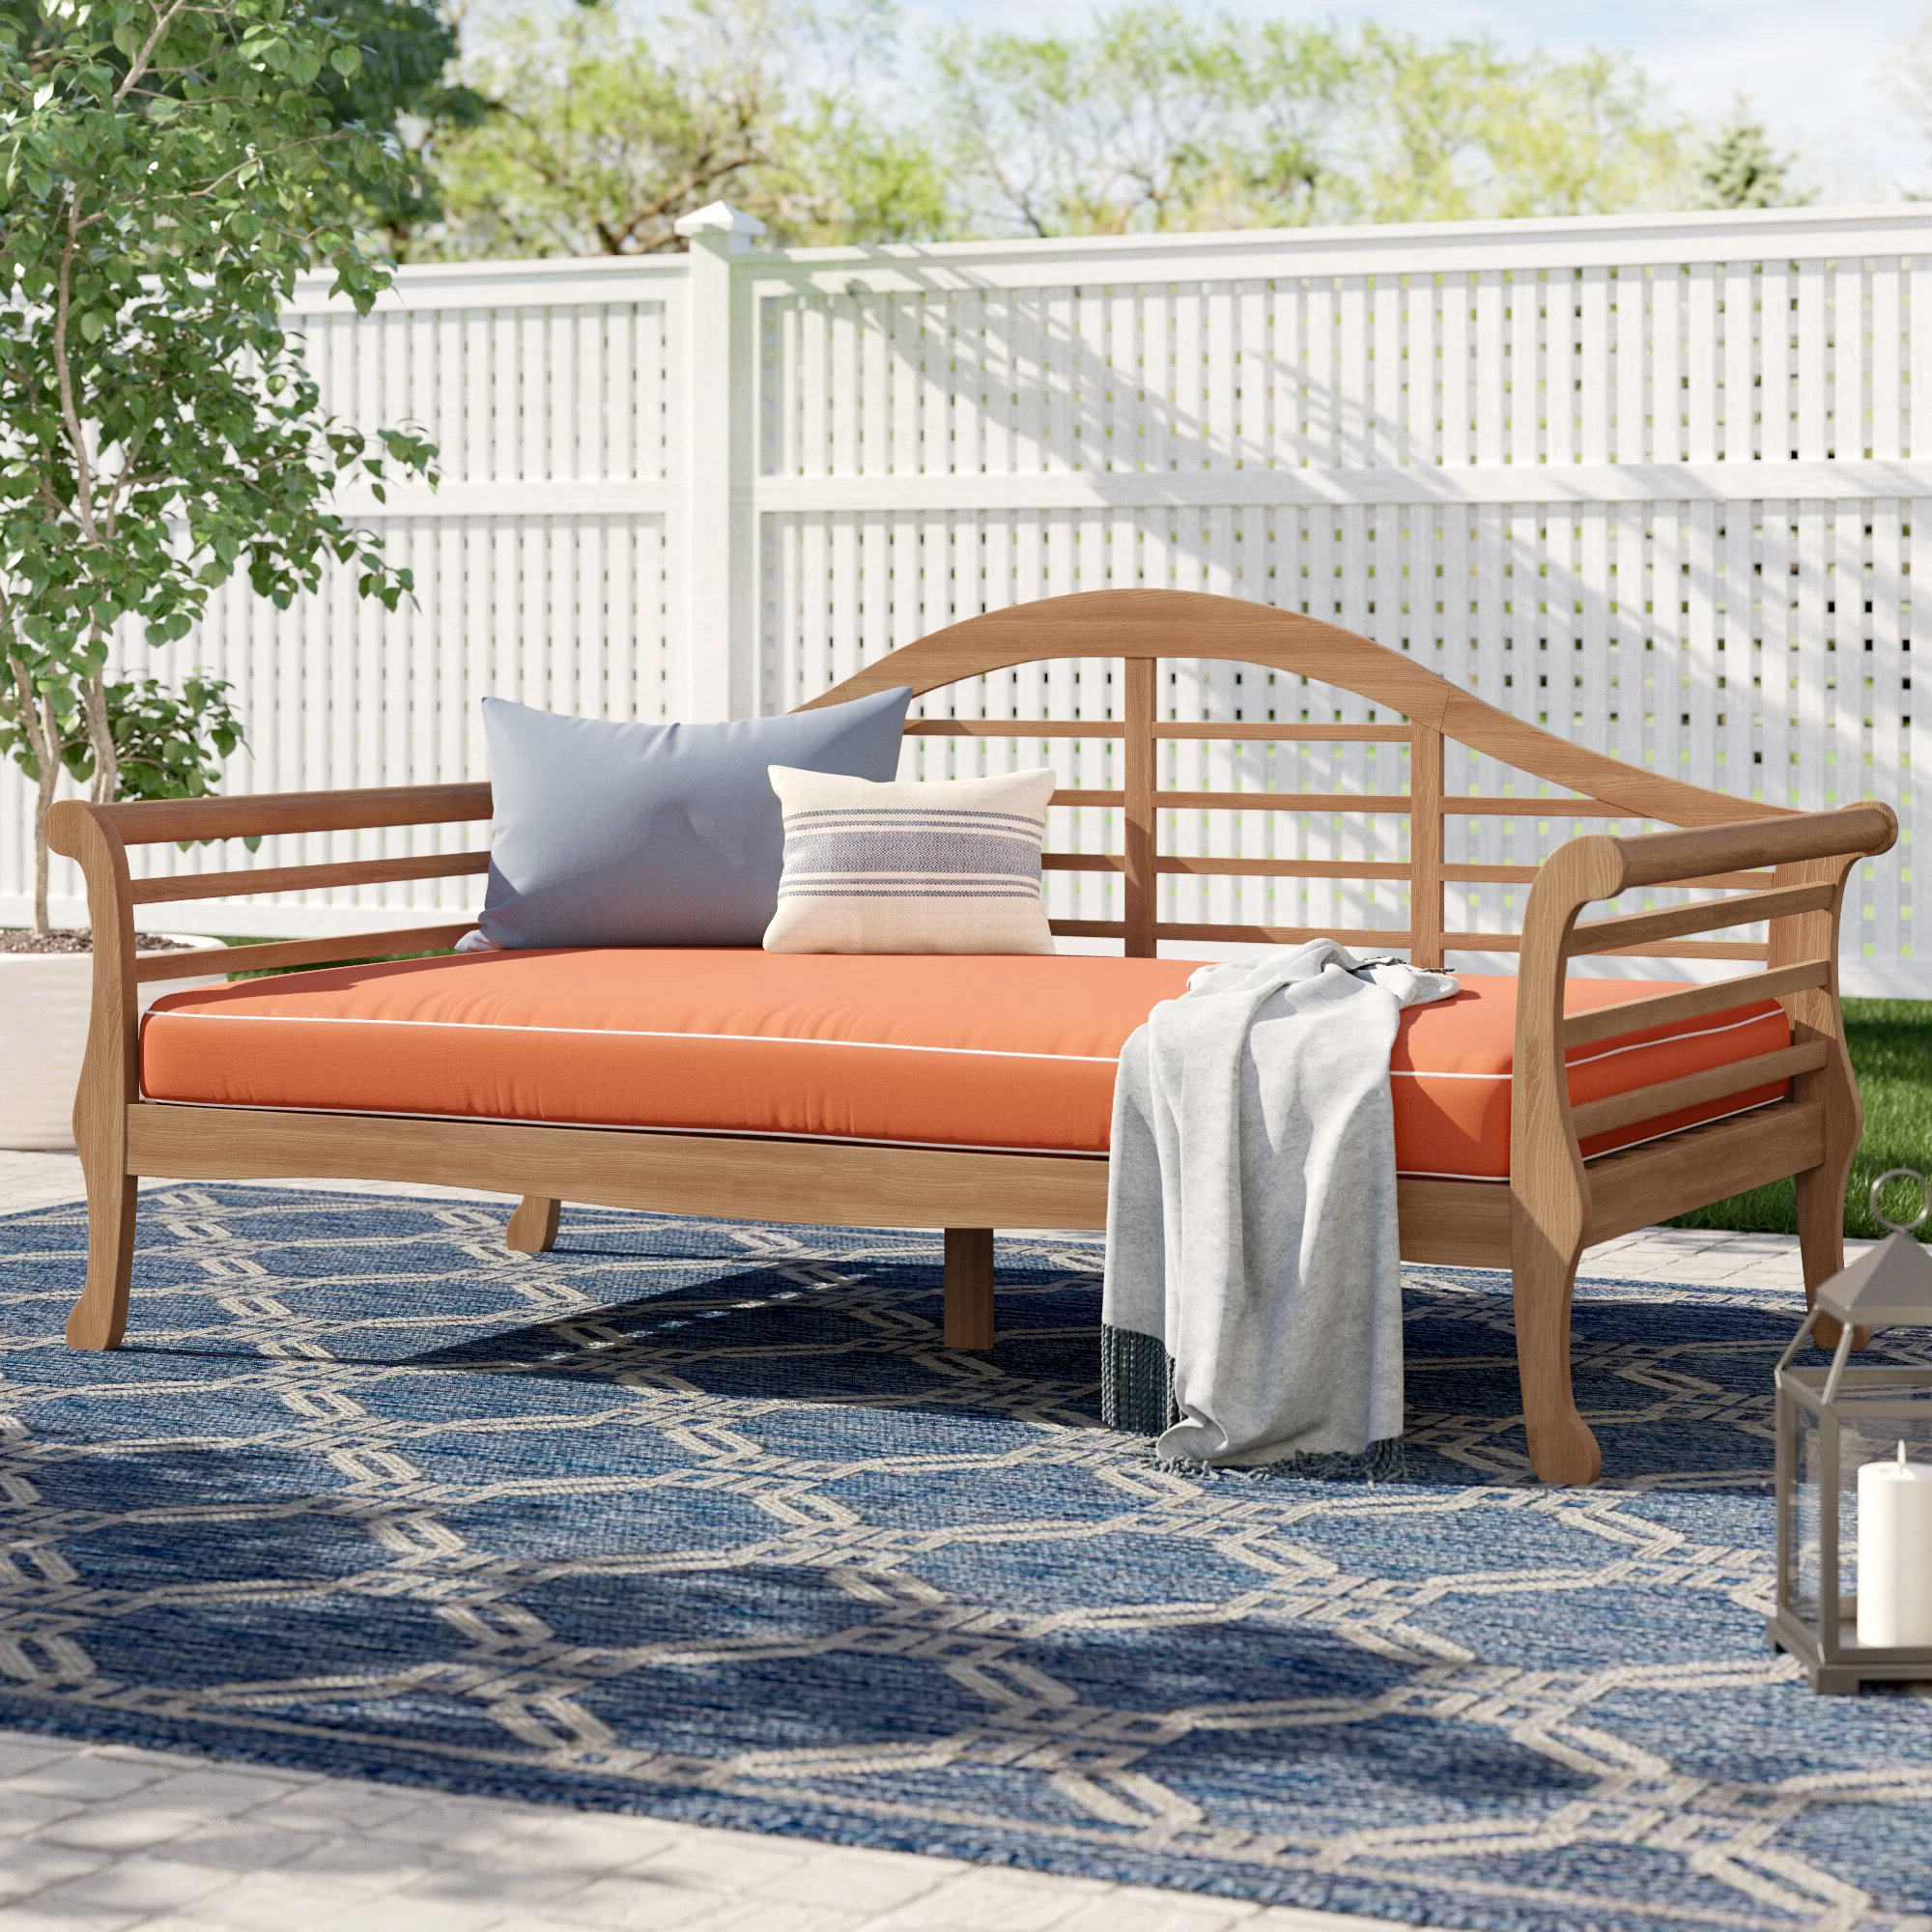 2020 Summerton Teak Patio Sofa With Cushions Pertaining To Bodine Patio Daybeds With Cushions (View 22 of 25)